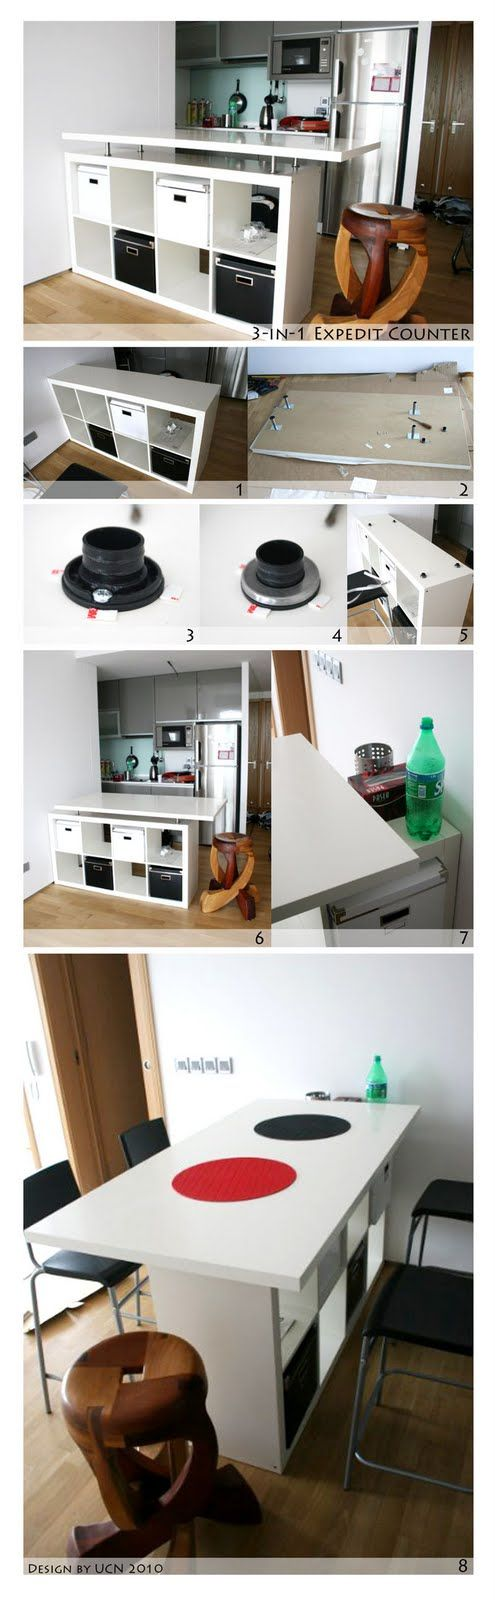 DIY kitchen island from ikea bookcase: Counter Space, Living Rooms, Expedition Kitchens, Kitchens Islands, 3 In 1 Expedition, Kitchens Counter, Ikea Hacks, Ikea Hackers, Dining Tables